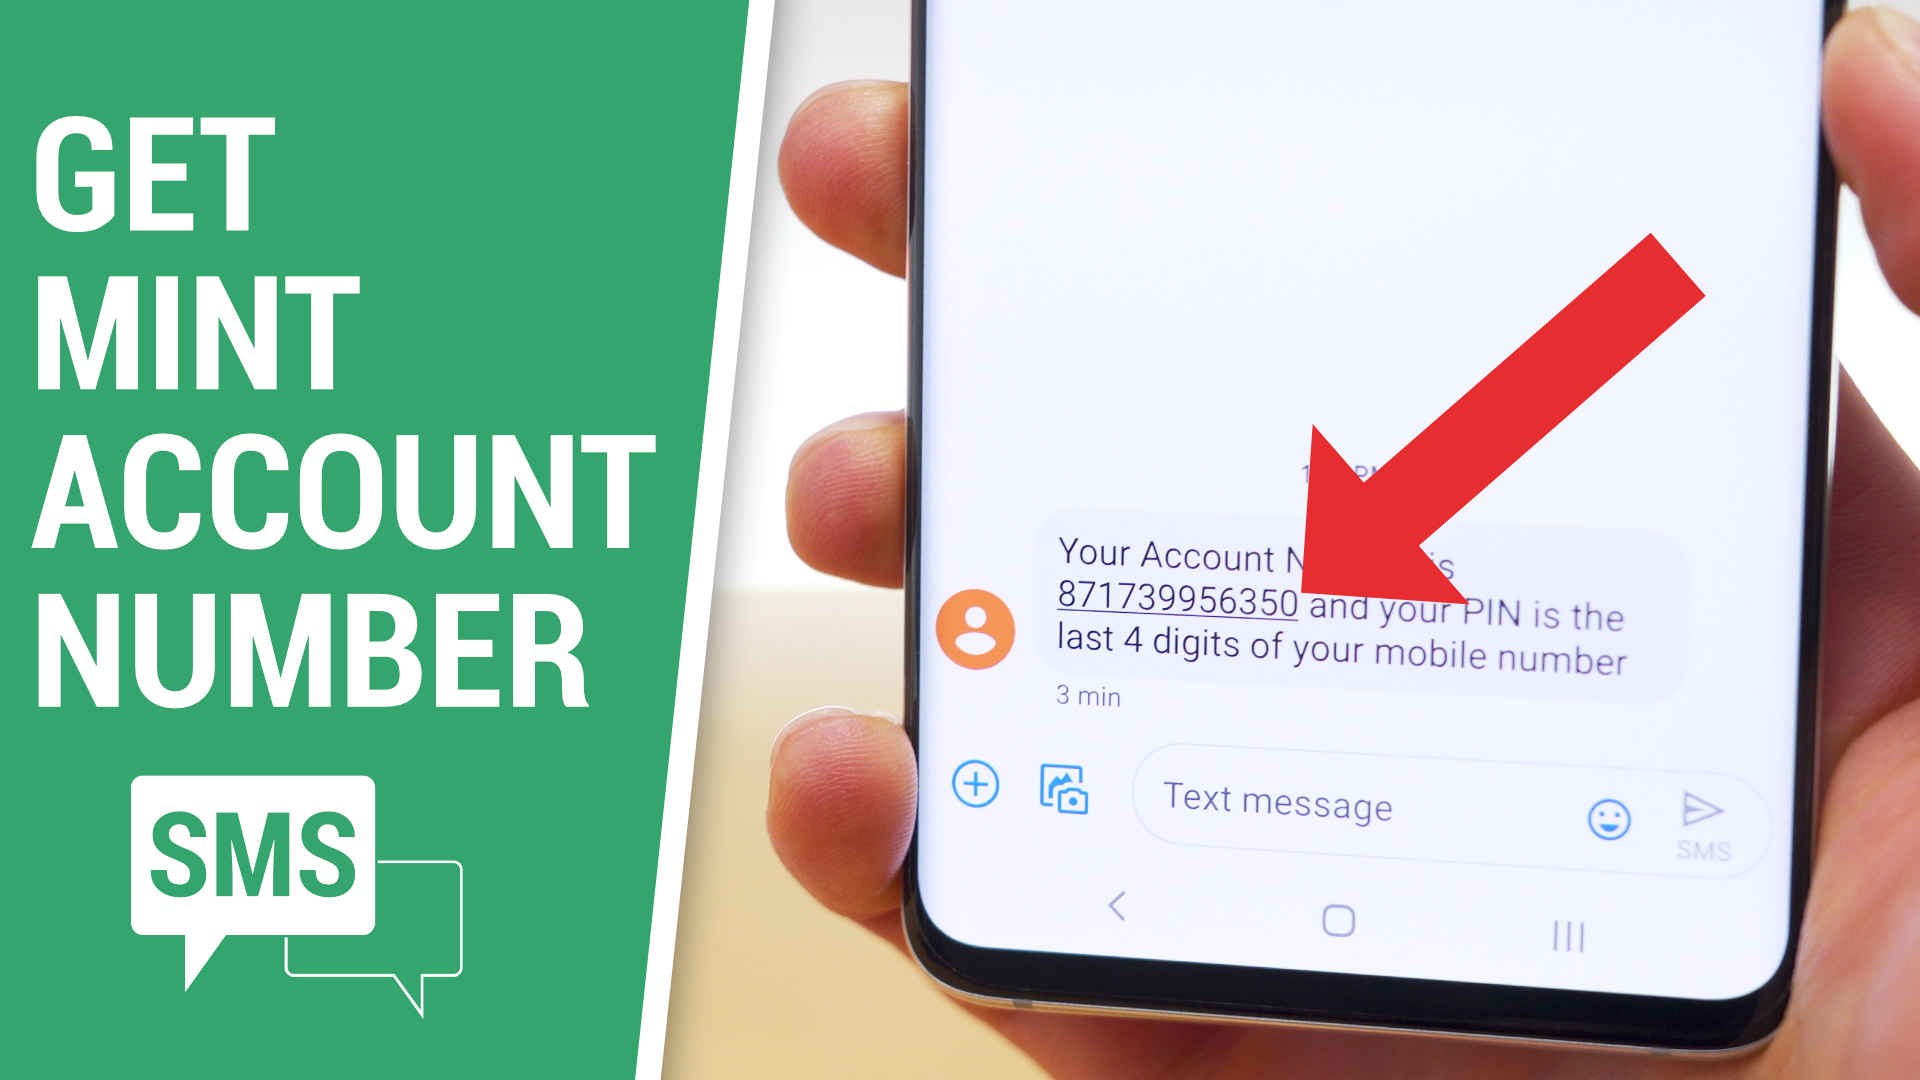 red arrow pointing to text message on phone containing Mint Mobile account number